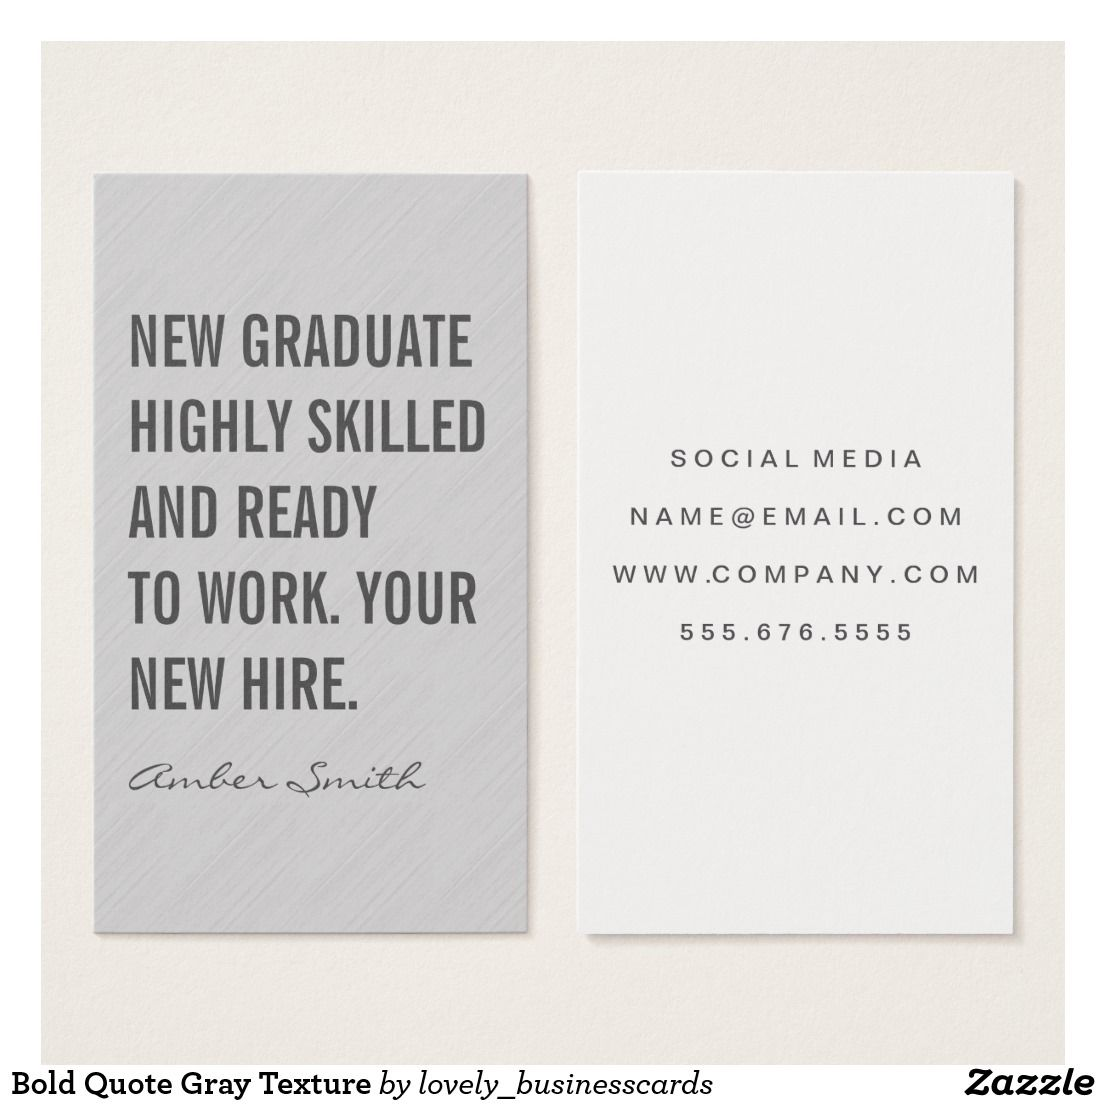 bold quote gray texture business card  zazzle